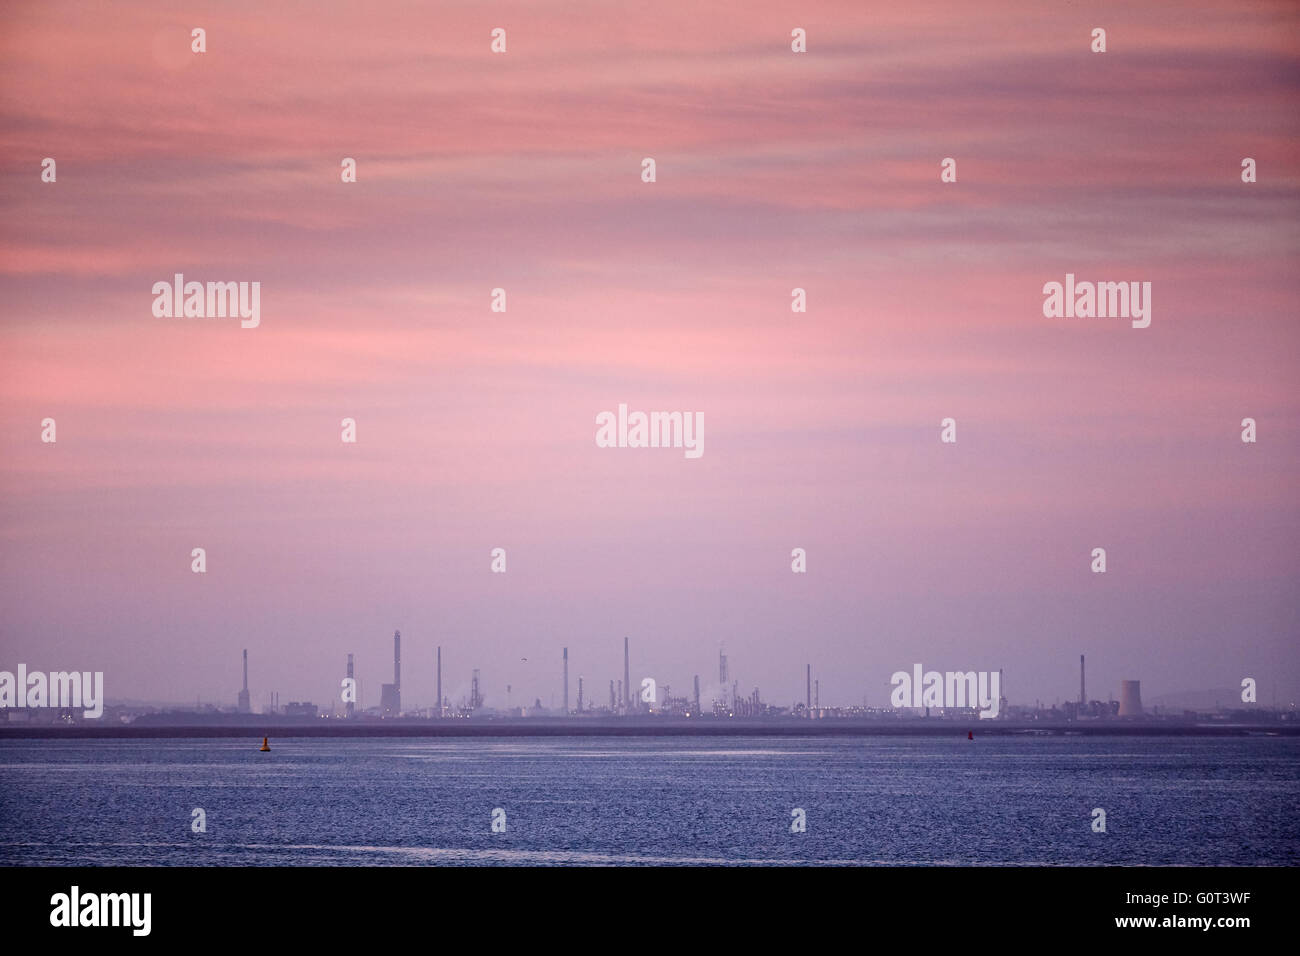 ICI Stanâow on the River Mersey - Stock Image